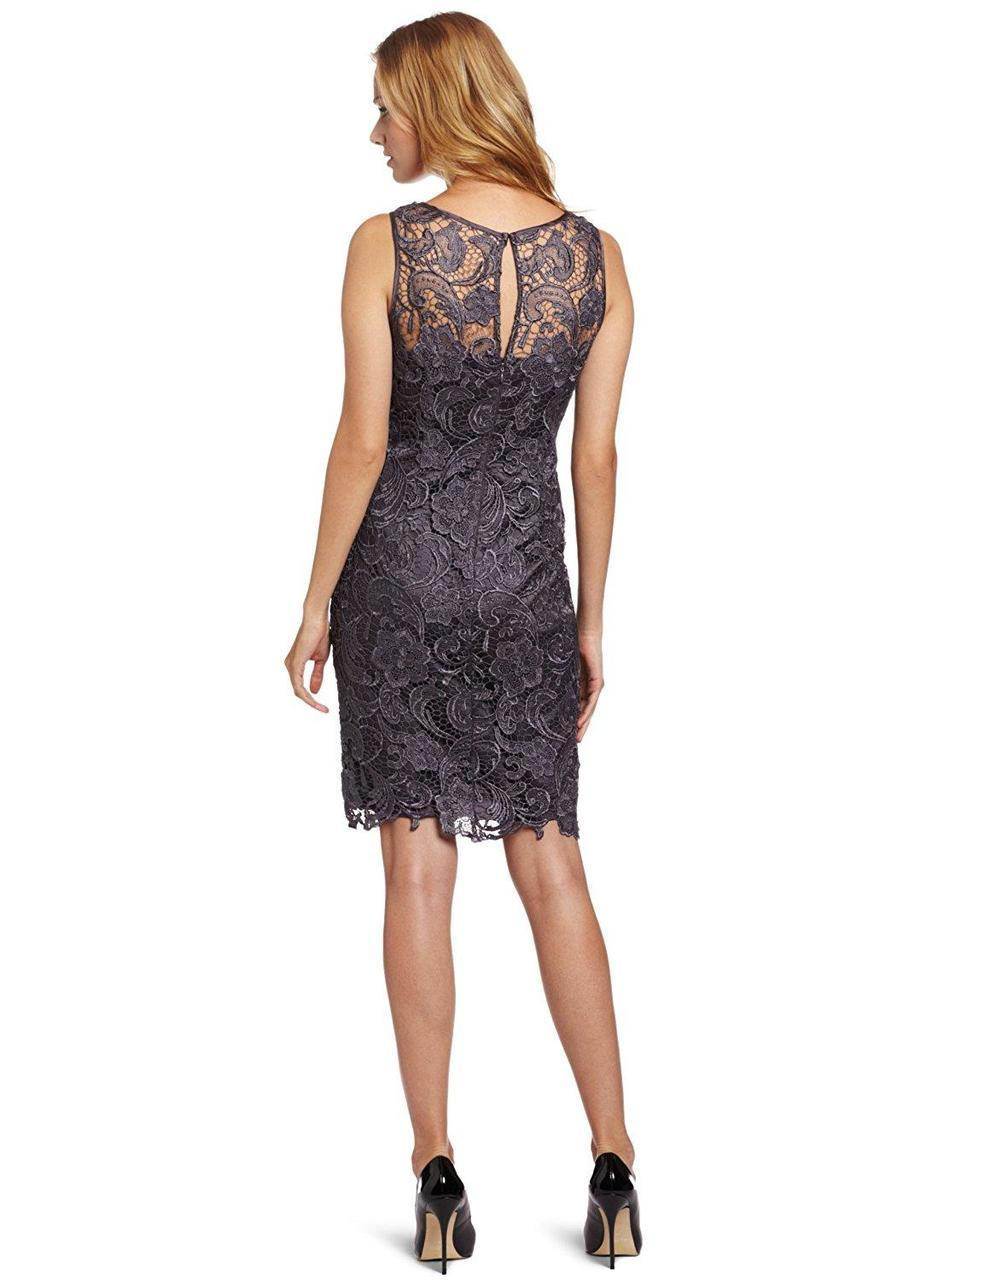 Adrianna Papell - Lace Overlay Dress 41863800 in Gray